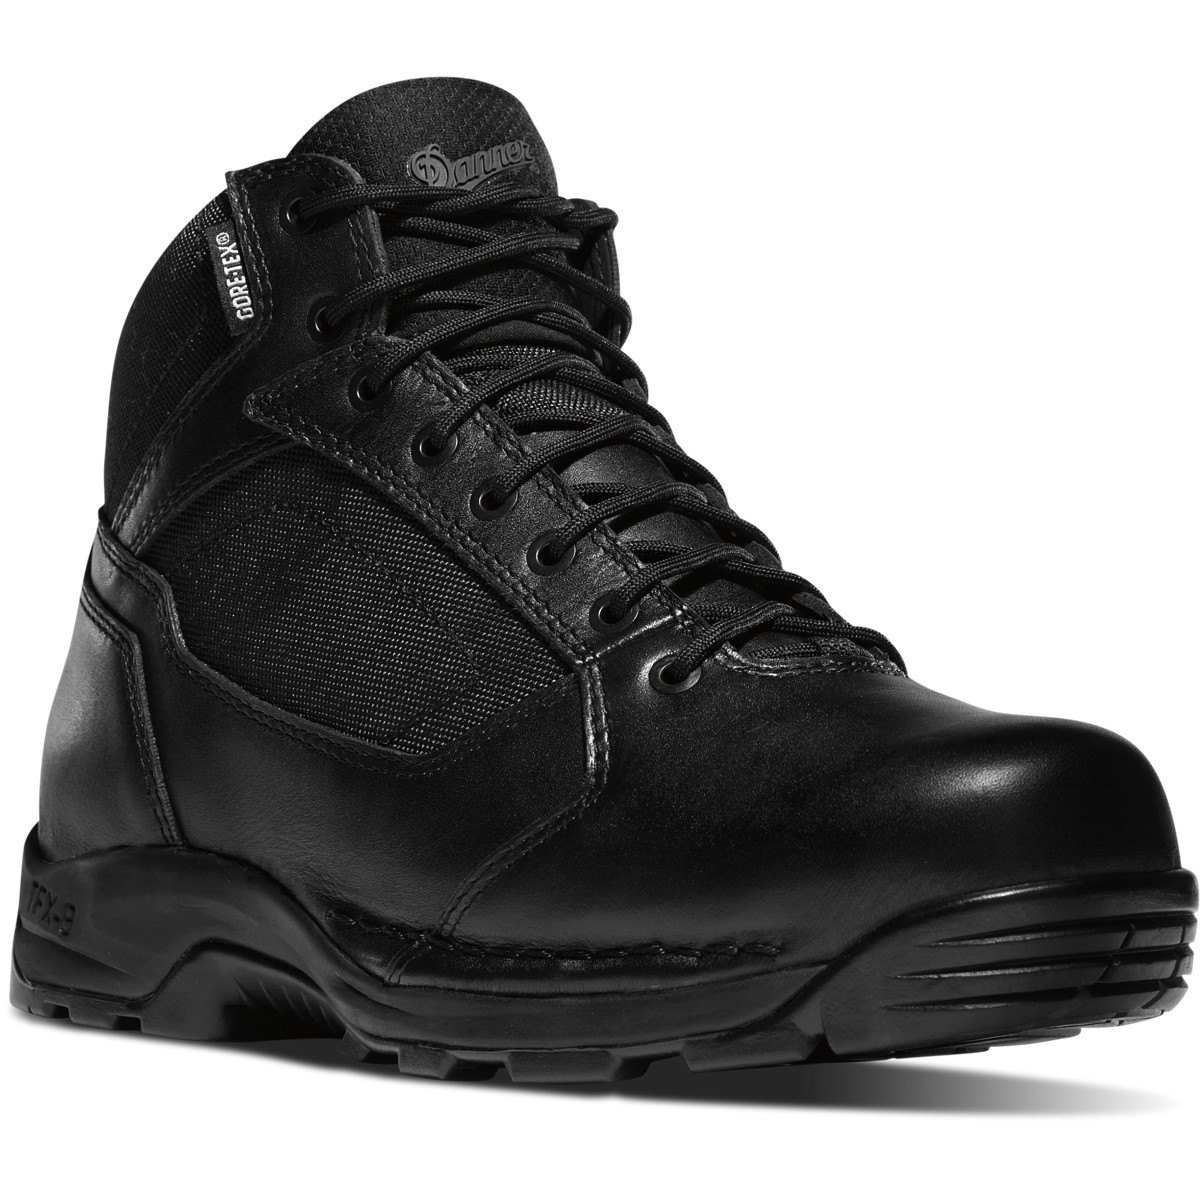 Danner Striker Torrent 45 Womens 4.5 Inch Waterproof Tactical Boot ...